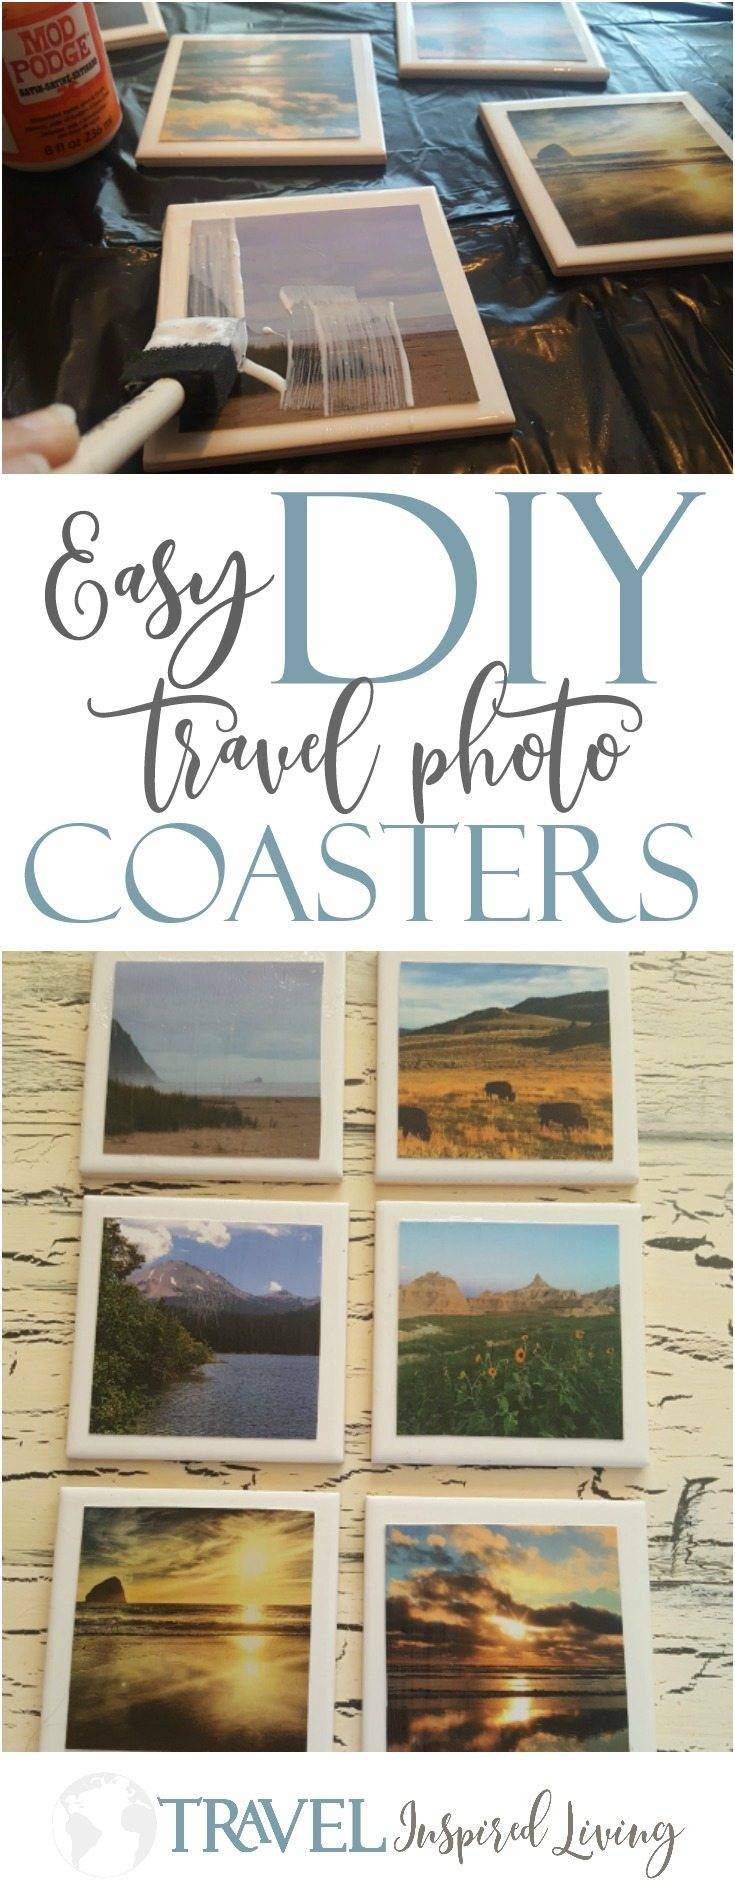 Easy DIY travel photo souvenir coasters